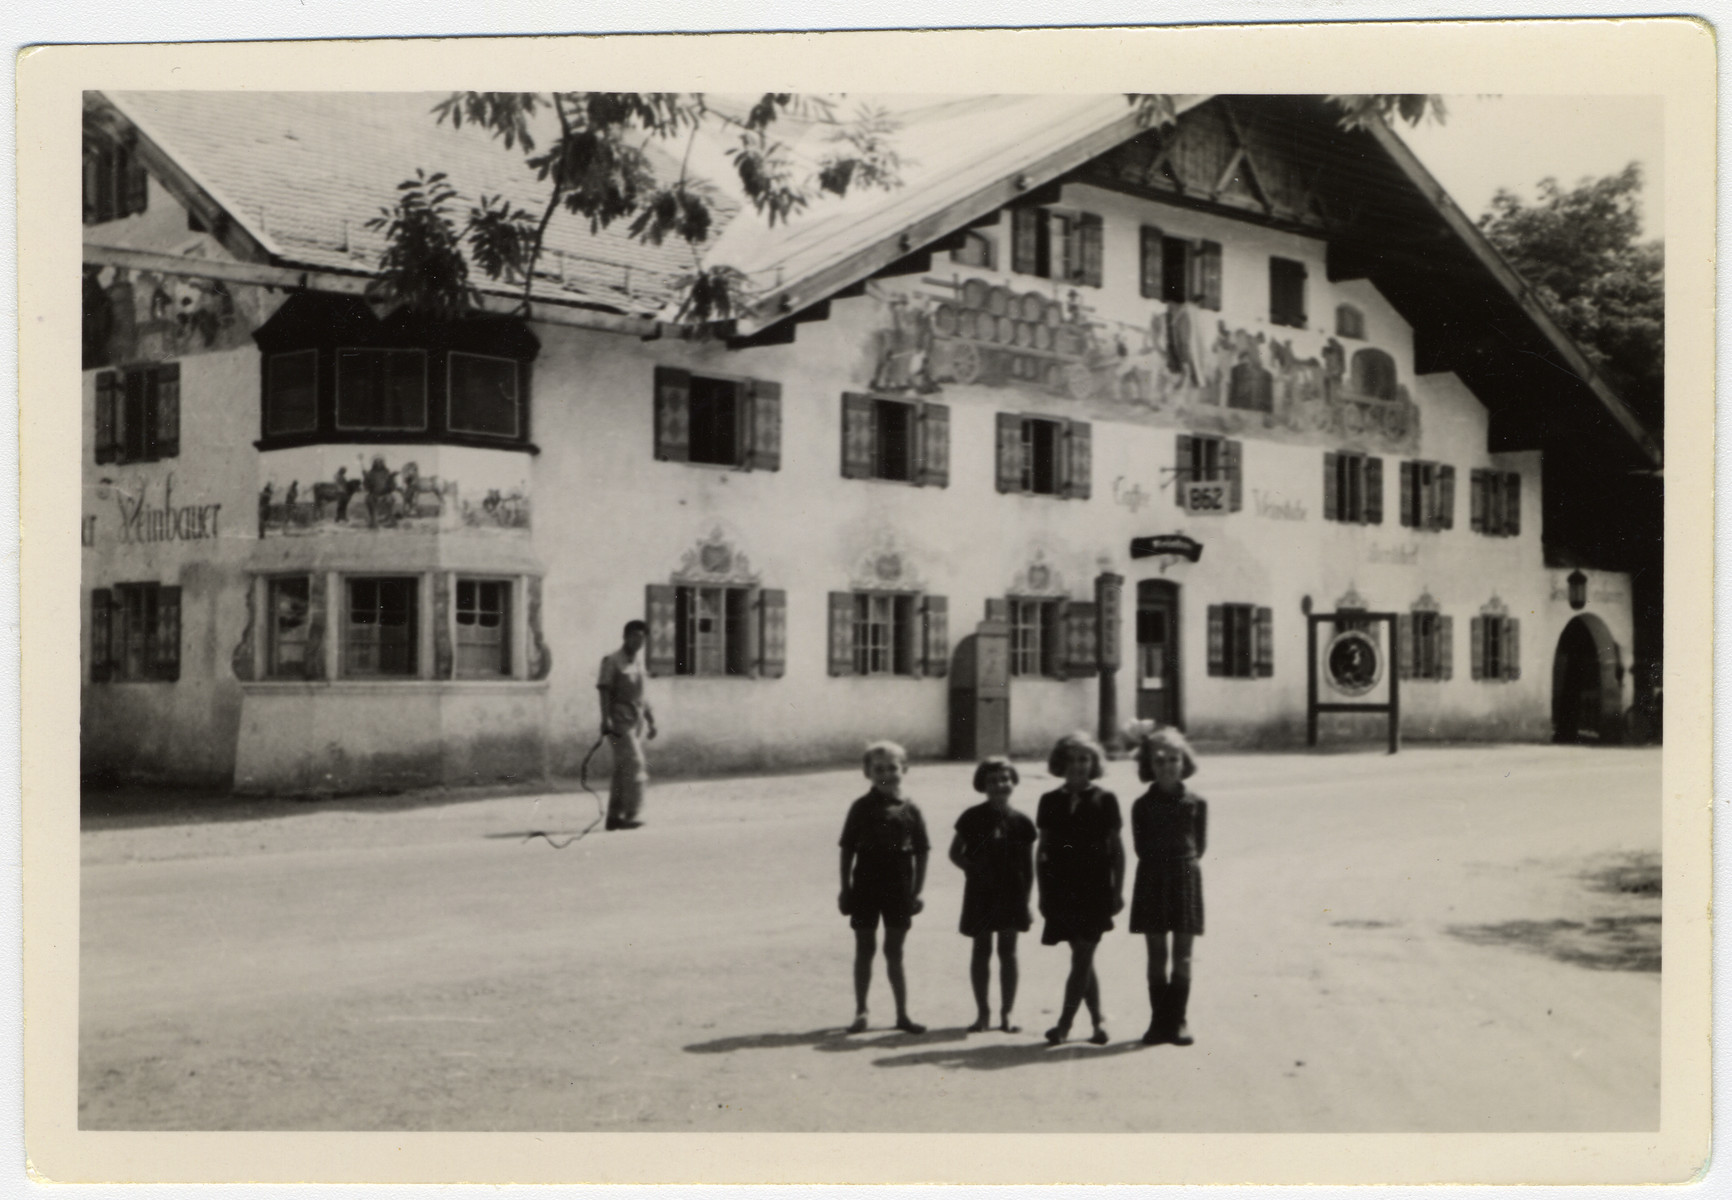 View of a rest home in Schongau Germany frequented by American soldiers.